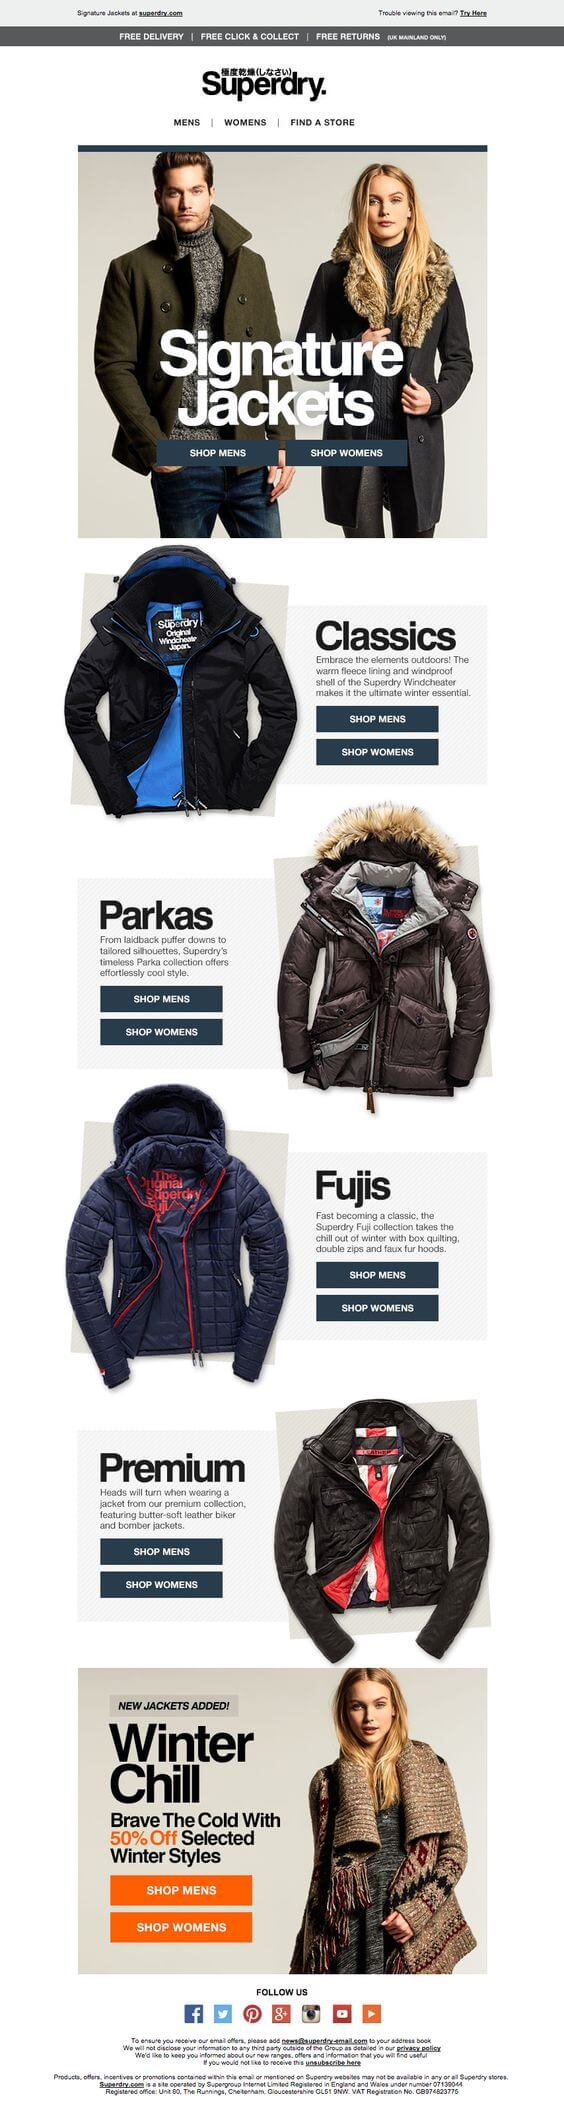 Email Personalization Examples- Superdry Season Email